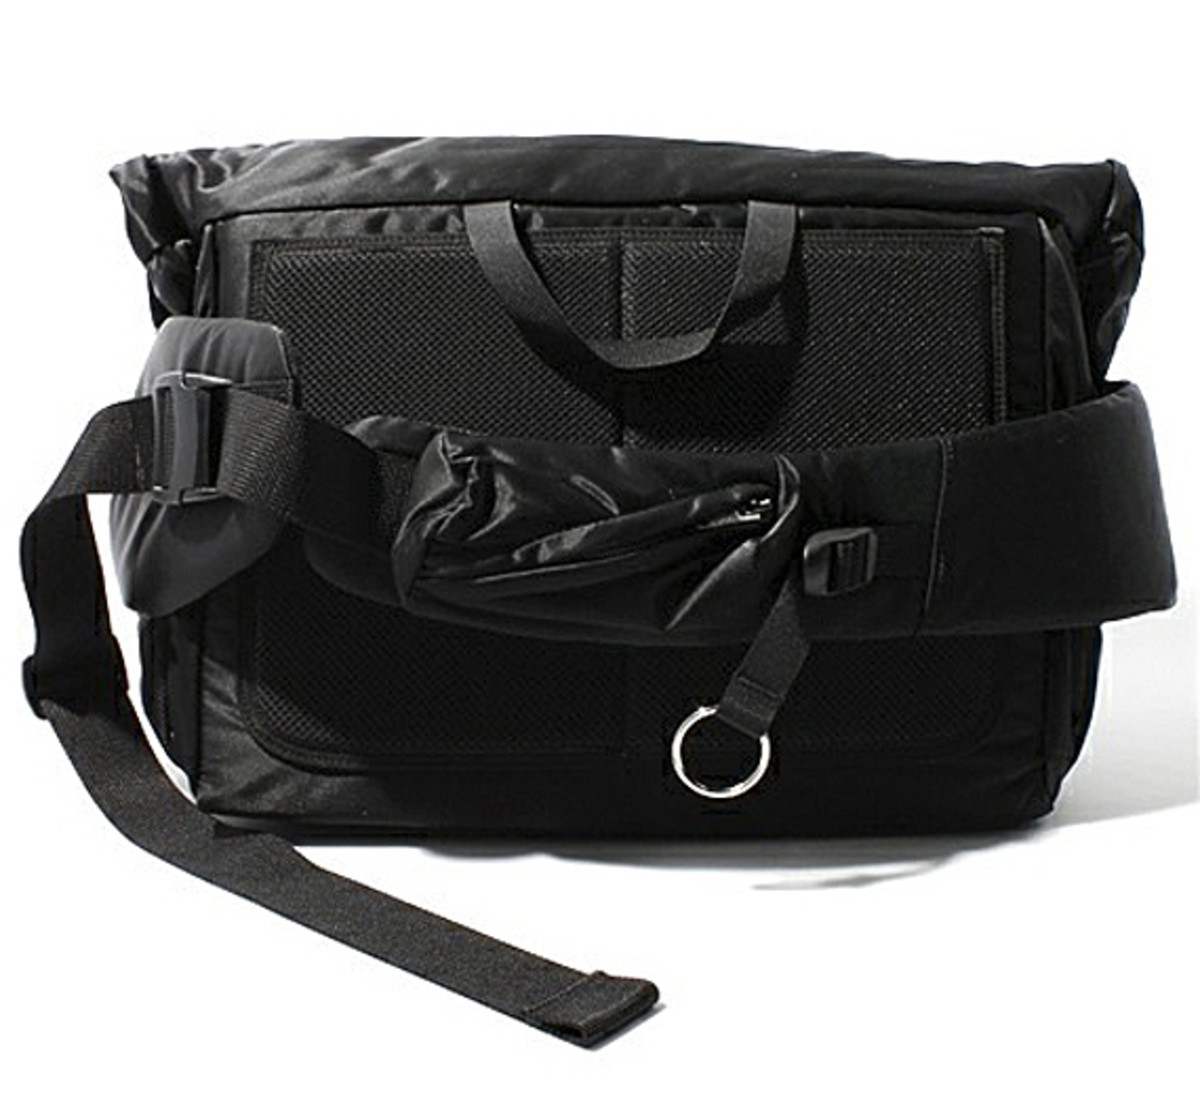 mastermind-JAPAN-PORTER-Messenger-Bag-03 (1)